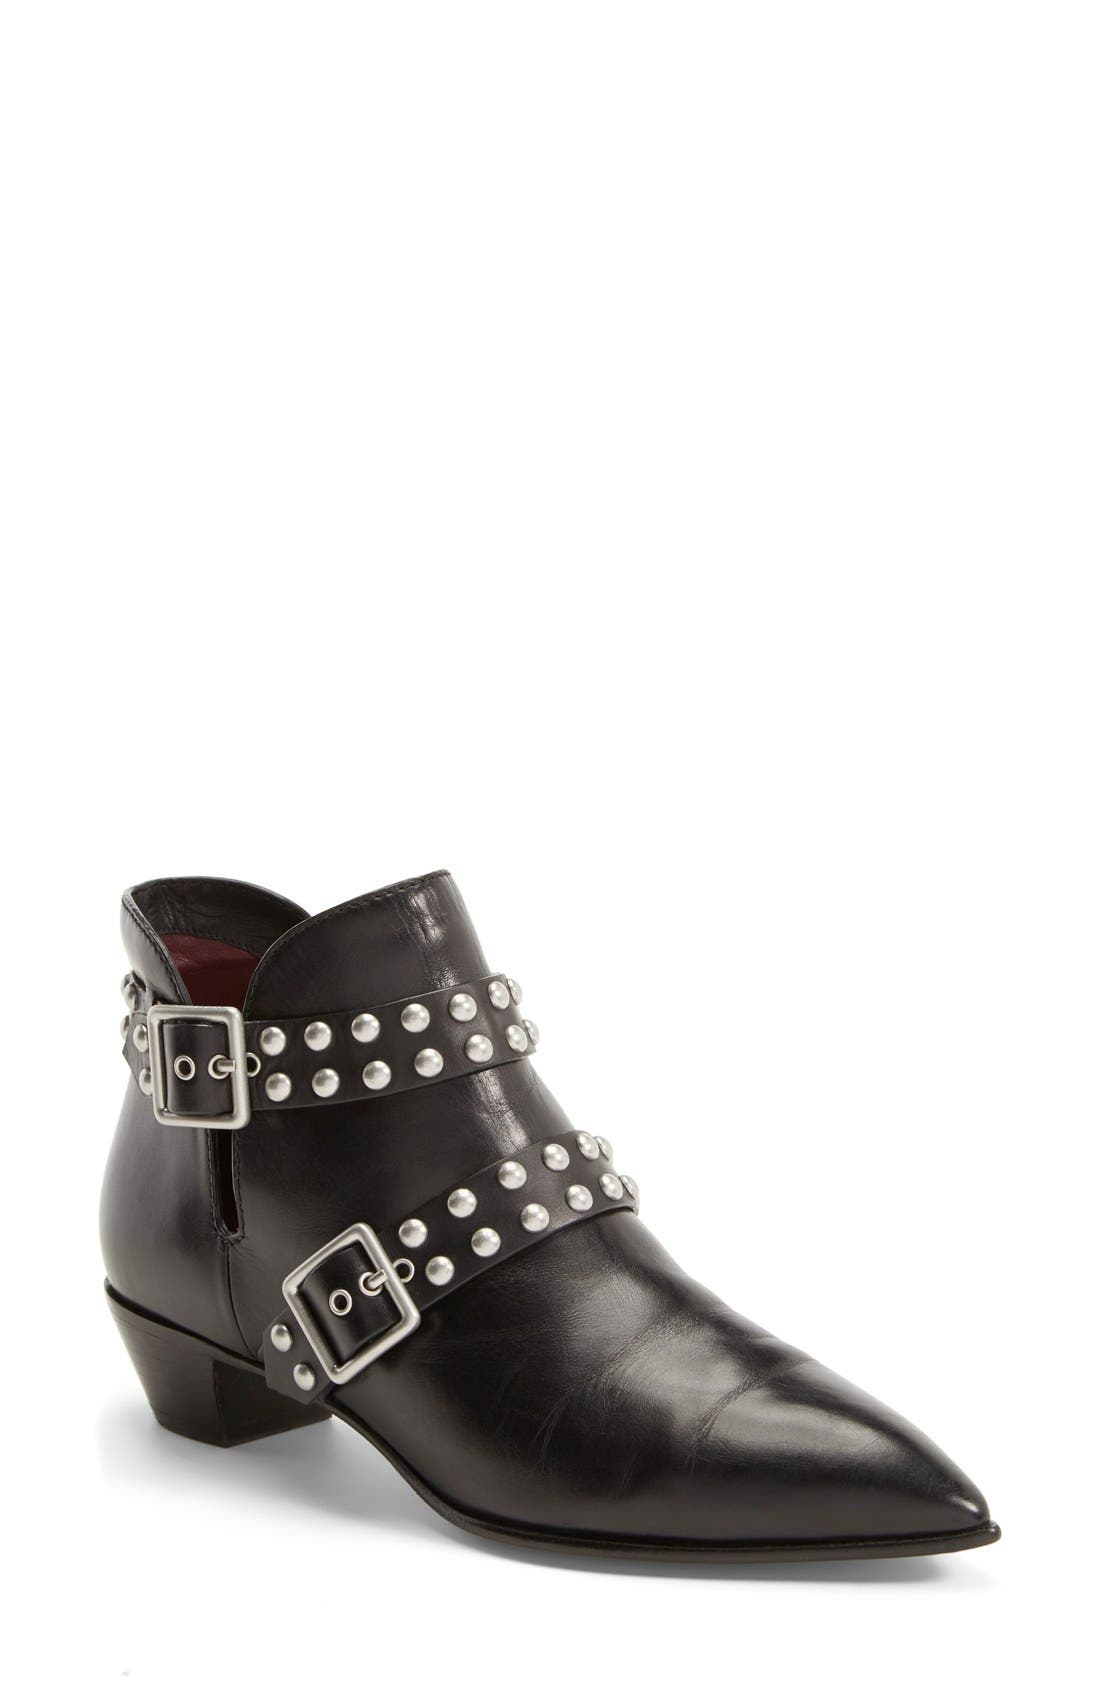 MARC BY MARC JACOBS 'Carroll' Studded Leather Pointy Toe Ankle Boot,                             Main thumbnail 1, color,                             001